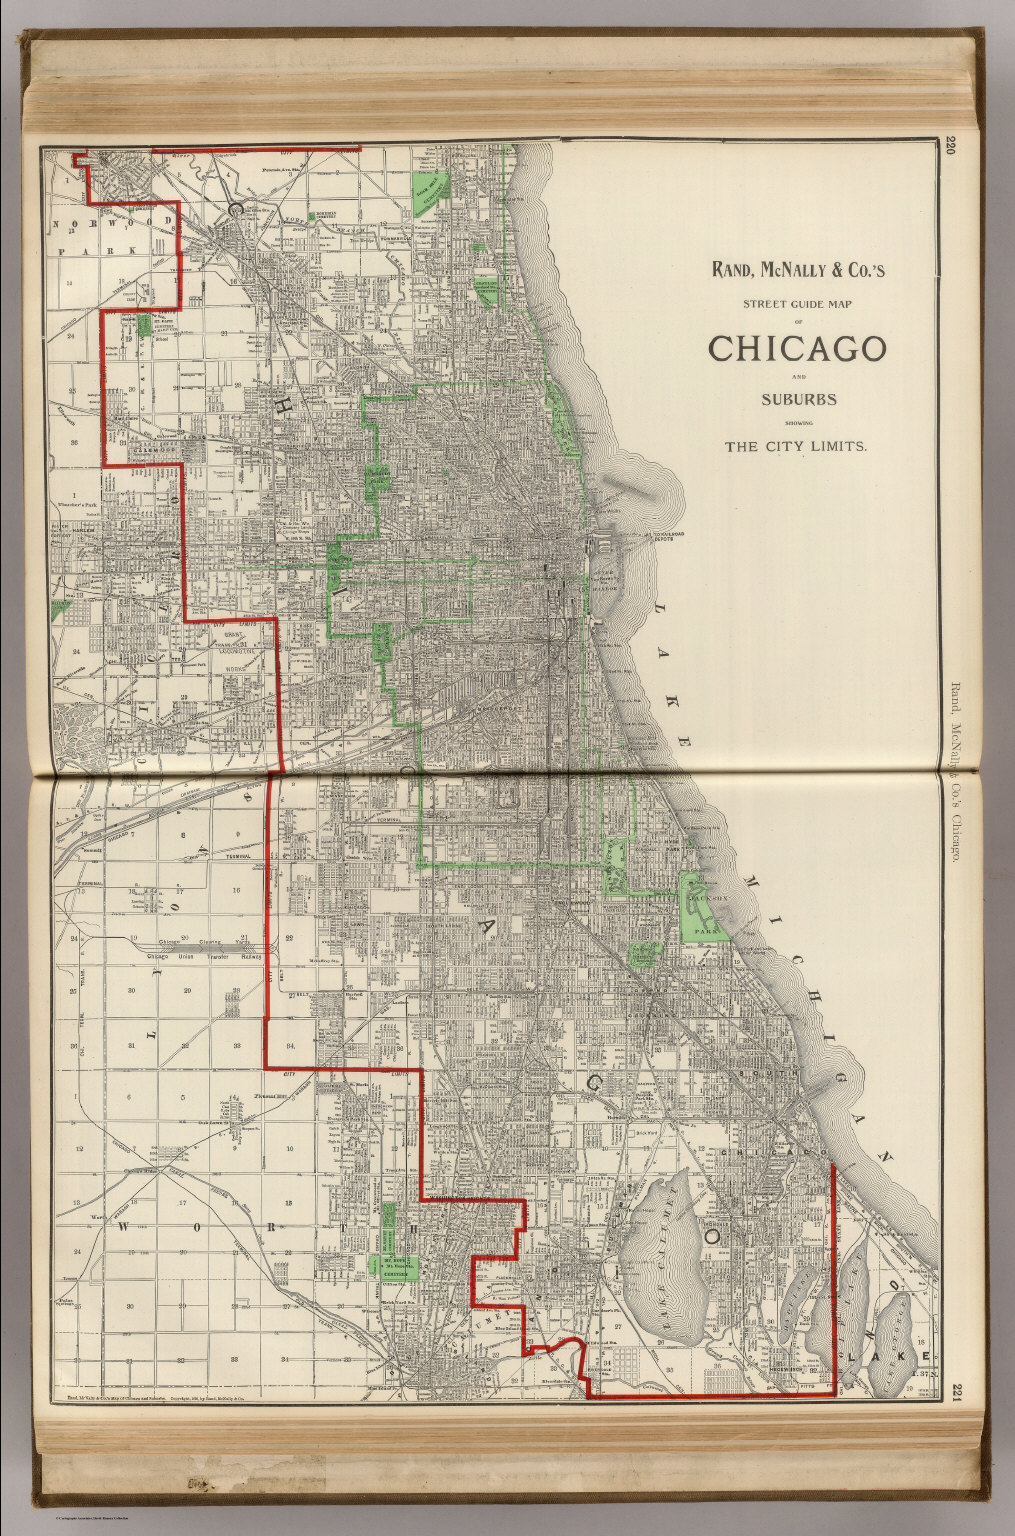 Chicago and Suburbs. - David Rumsey Historical Map Collection on